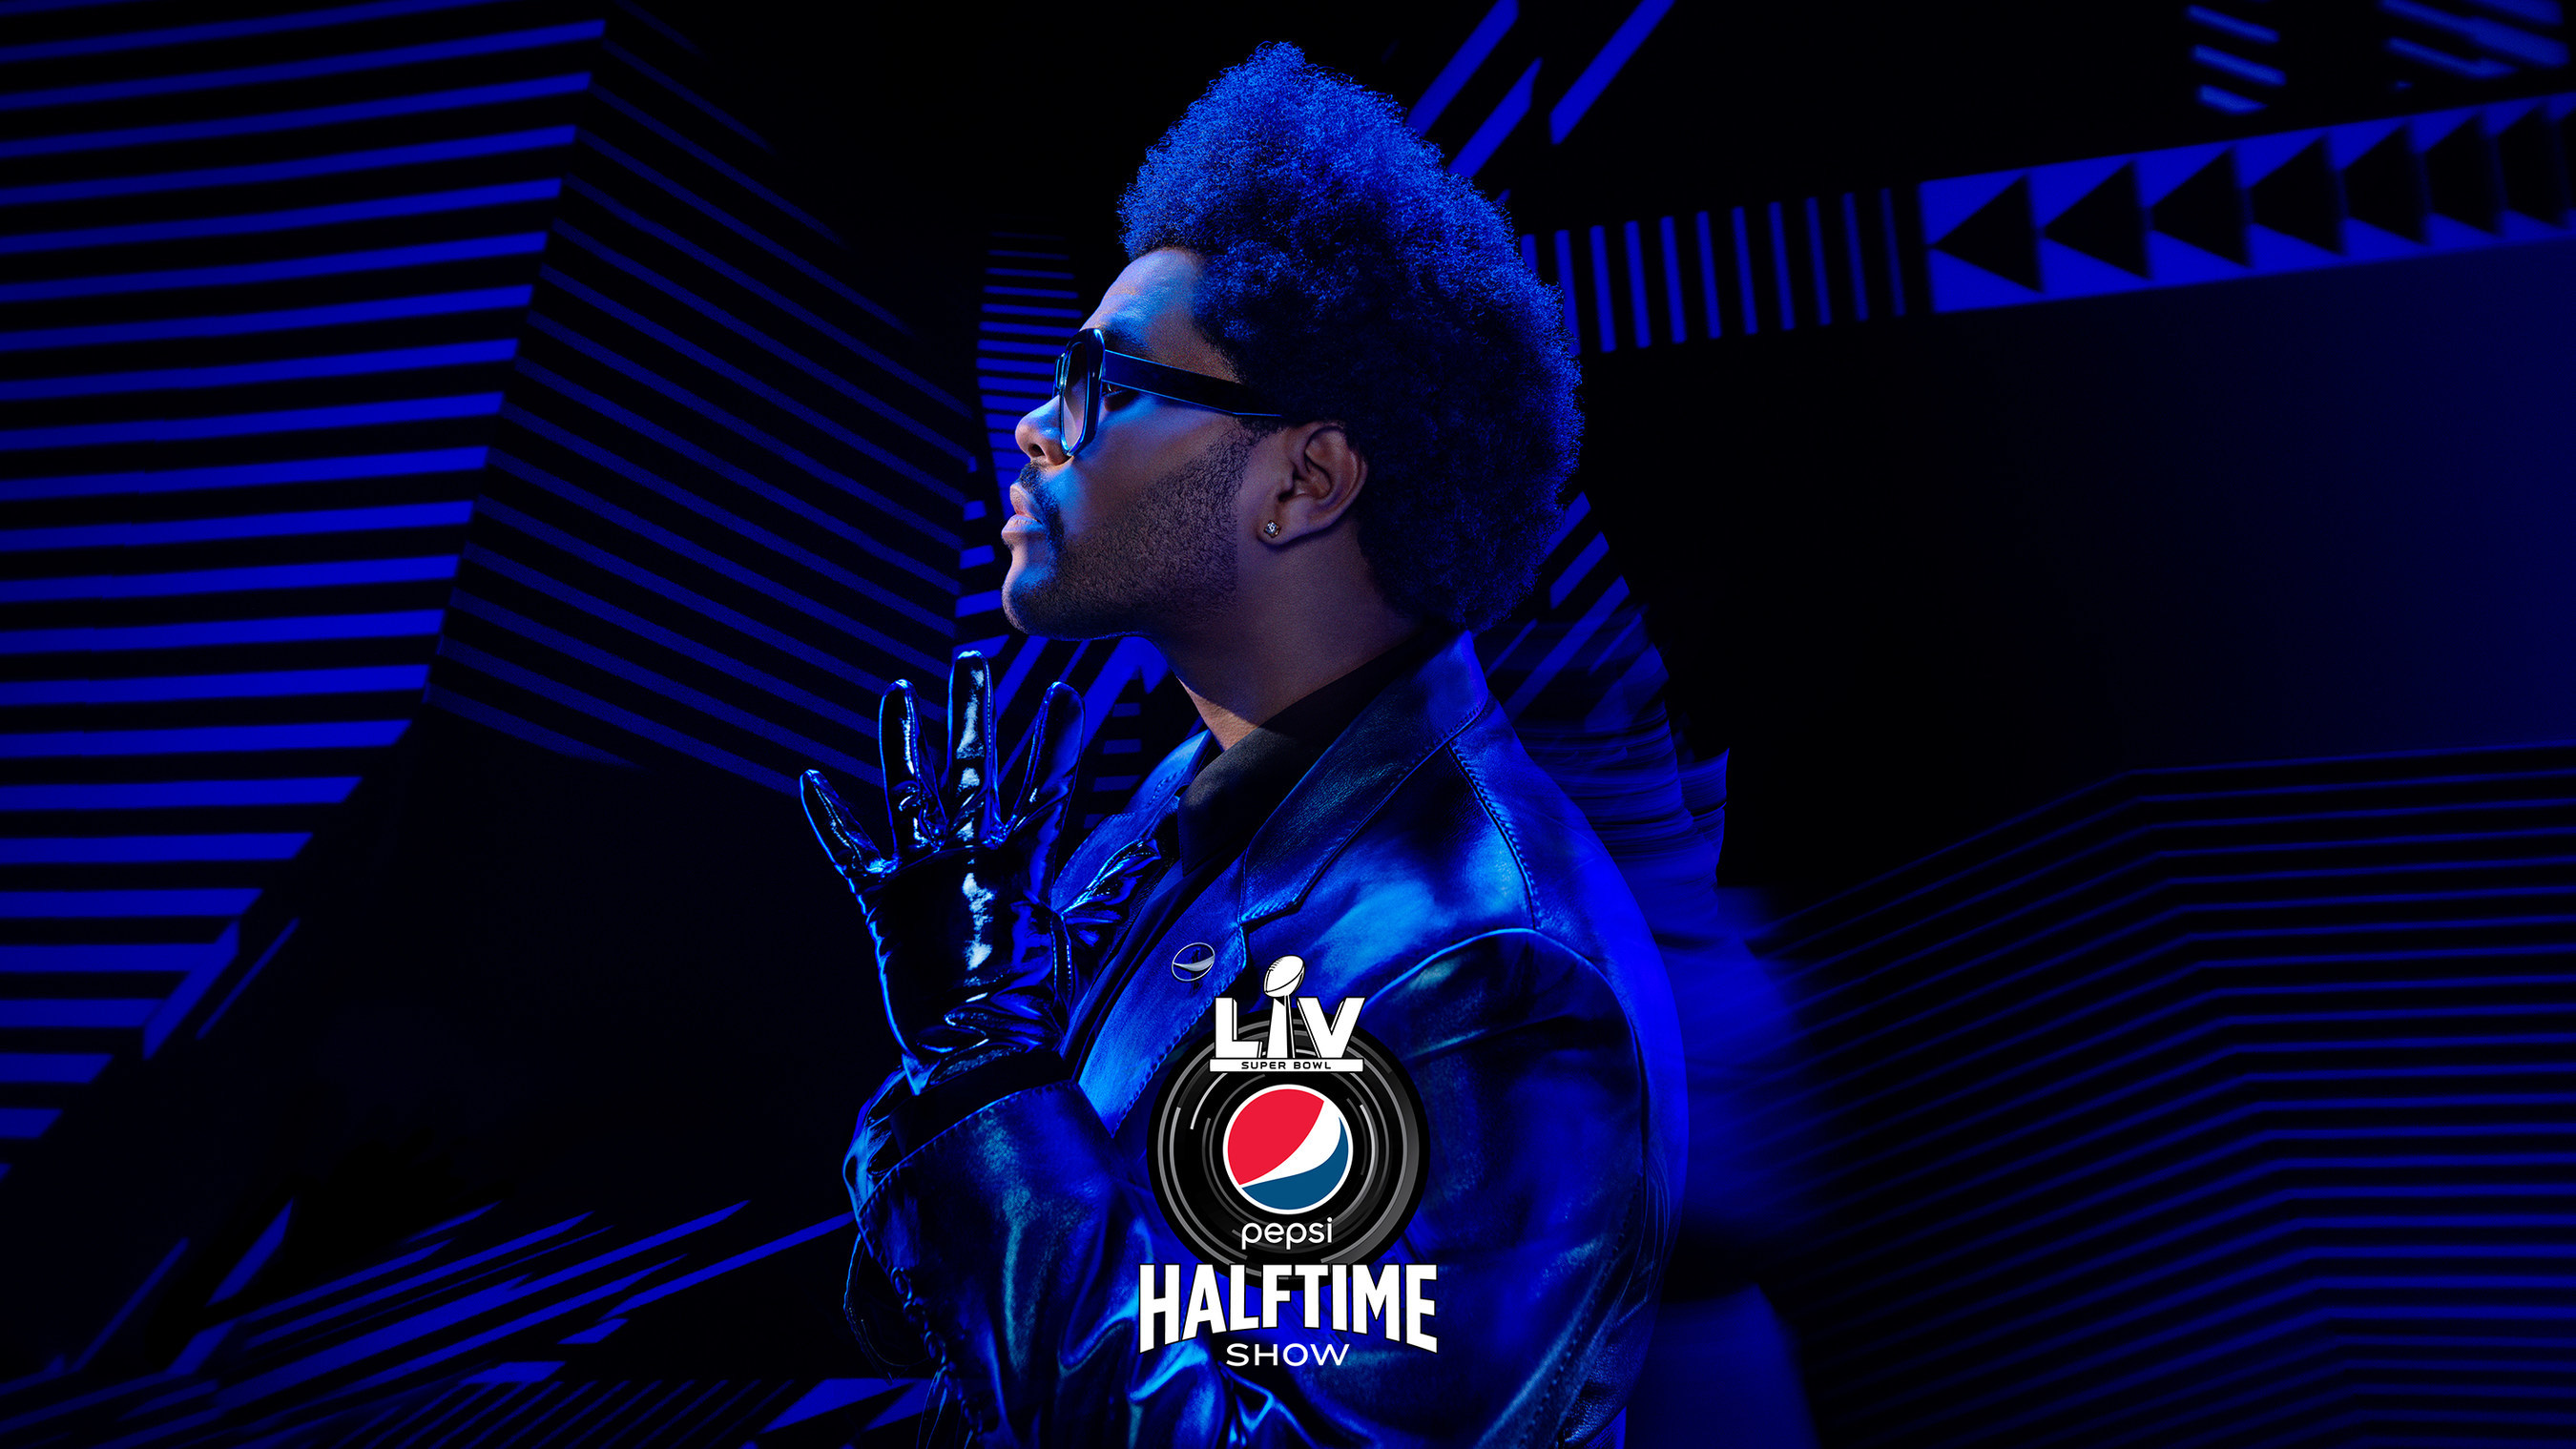 Superbowl Pepsi Halftime Show, The Weeknd